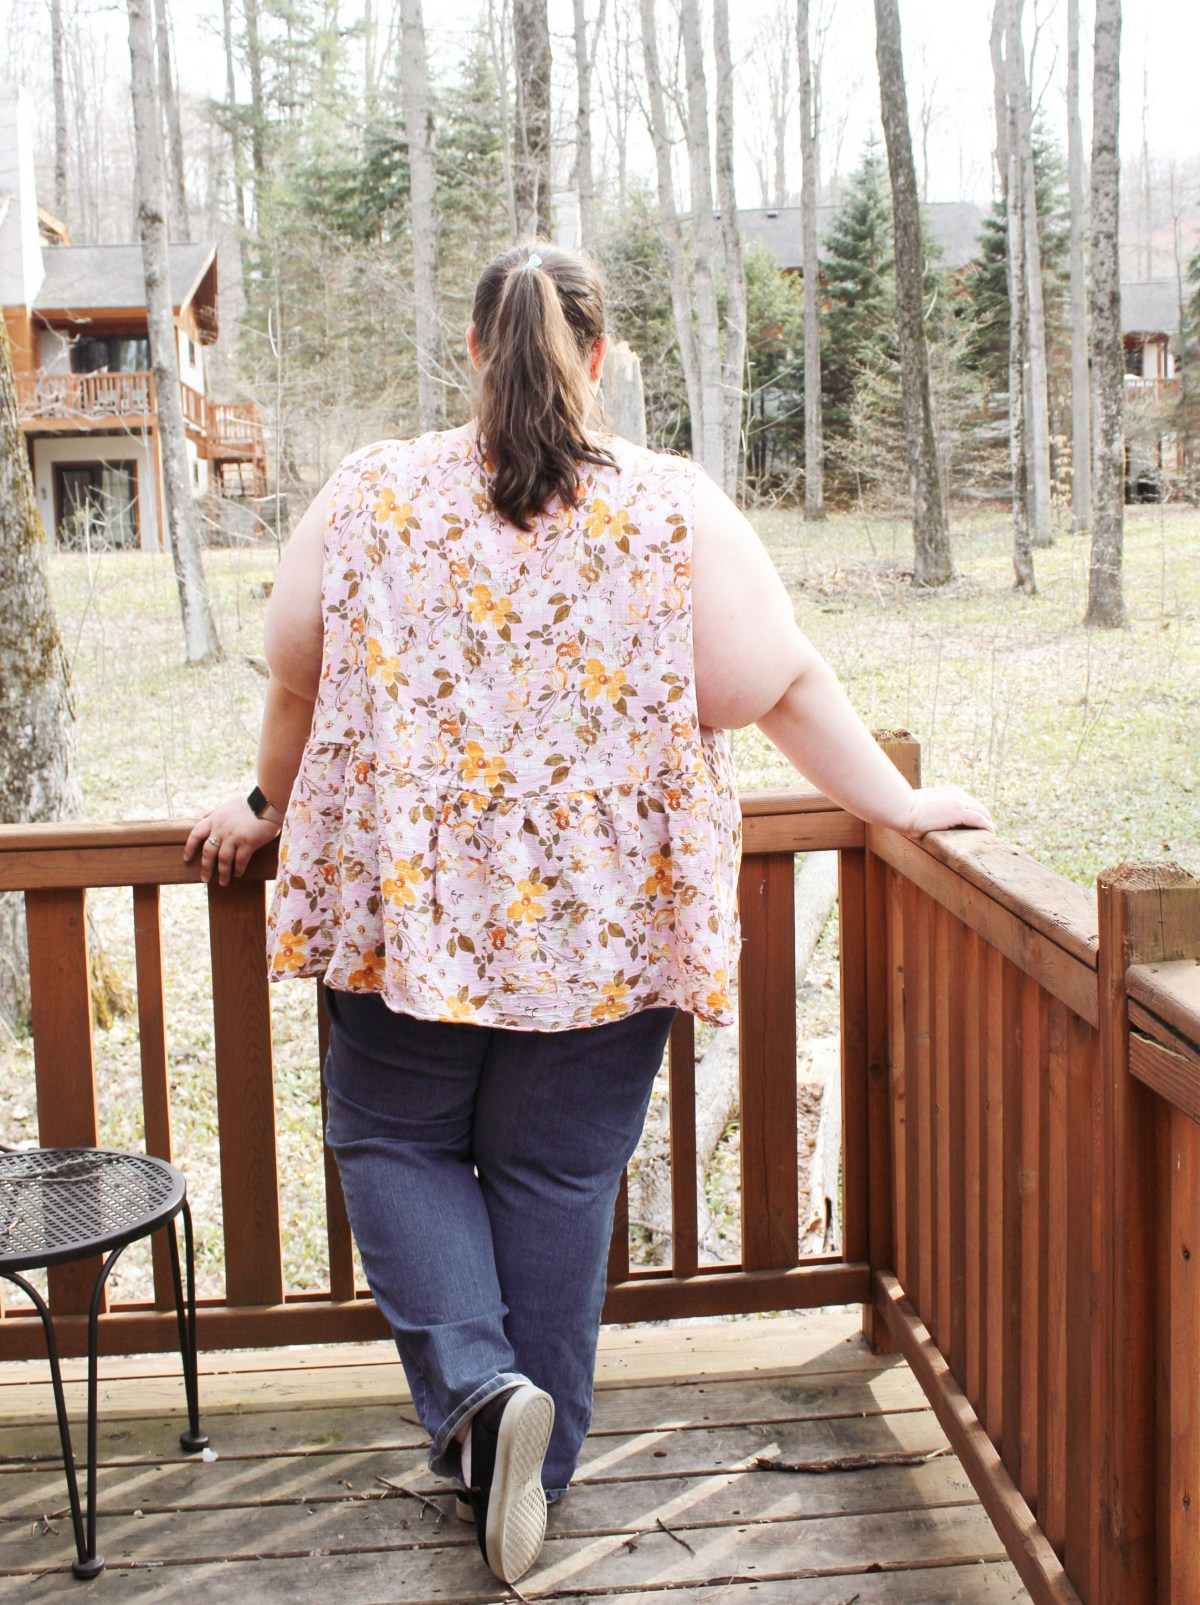 A woman stands against a deck railing facing away from the camera. Her brown hair is pulled back into a ponytail and she has bent her left knee casually. She is plus-sized and is wearing blue jeans and a sleeveless pink and yellow floral top with a gathered lower bodice. She looks off toward the woods and houses beyond the deck.